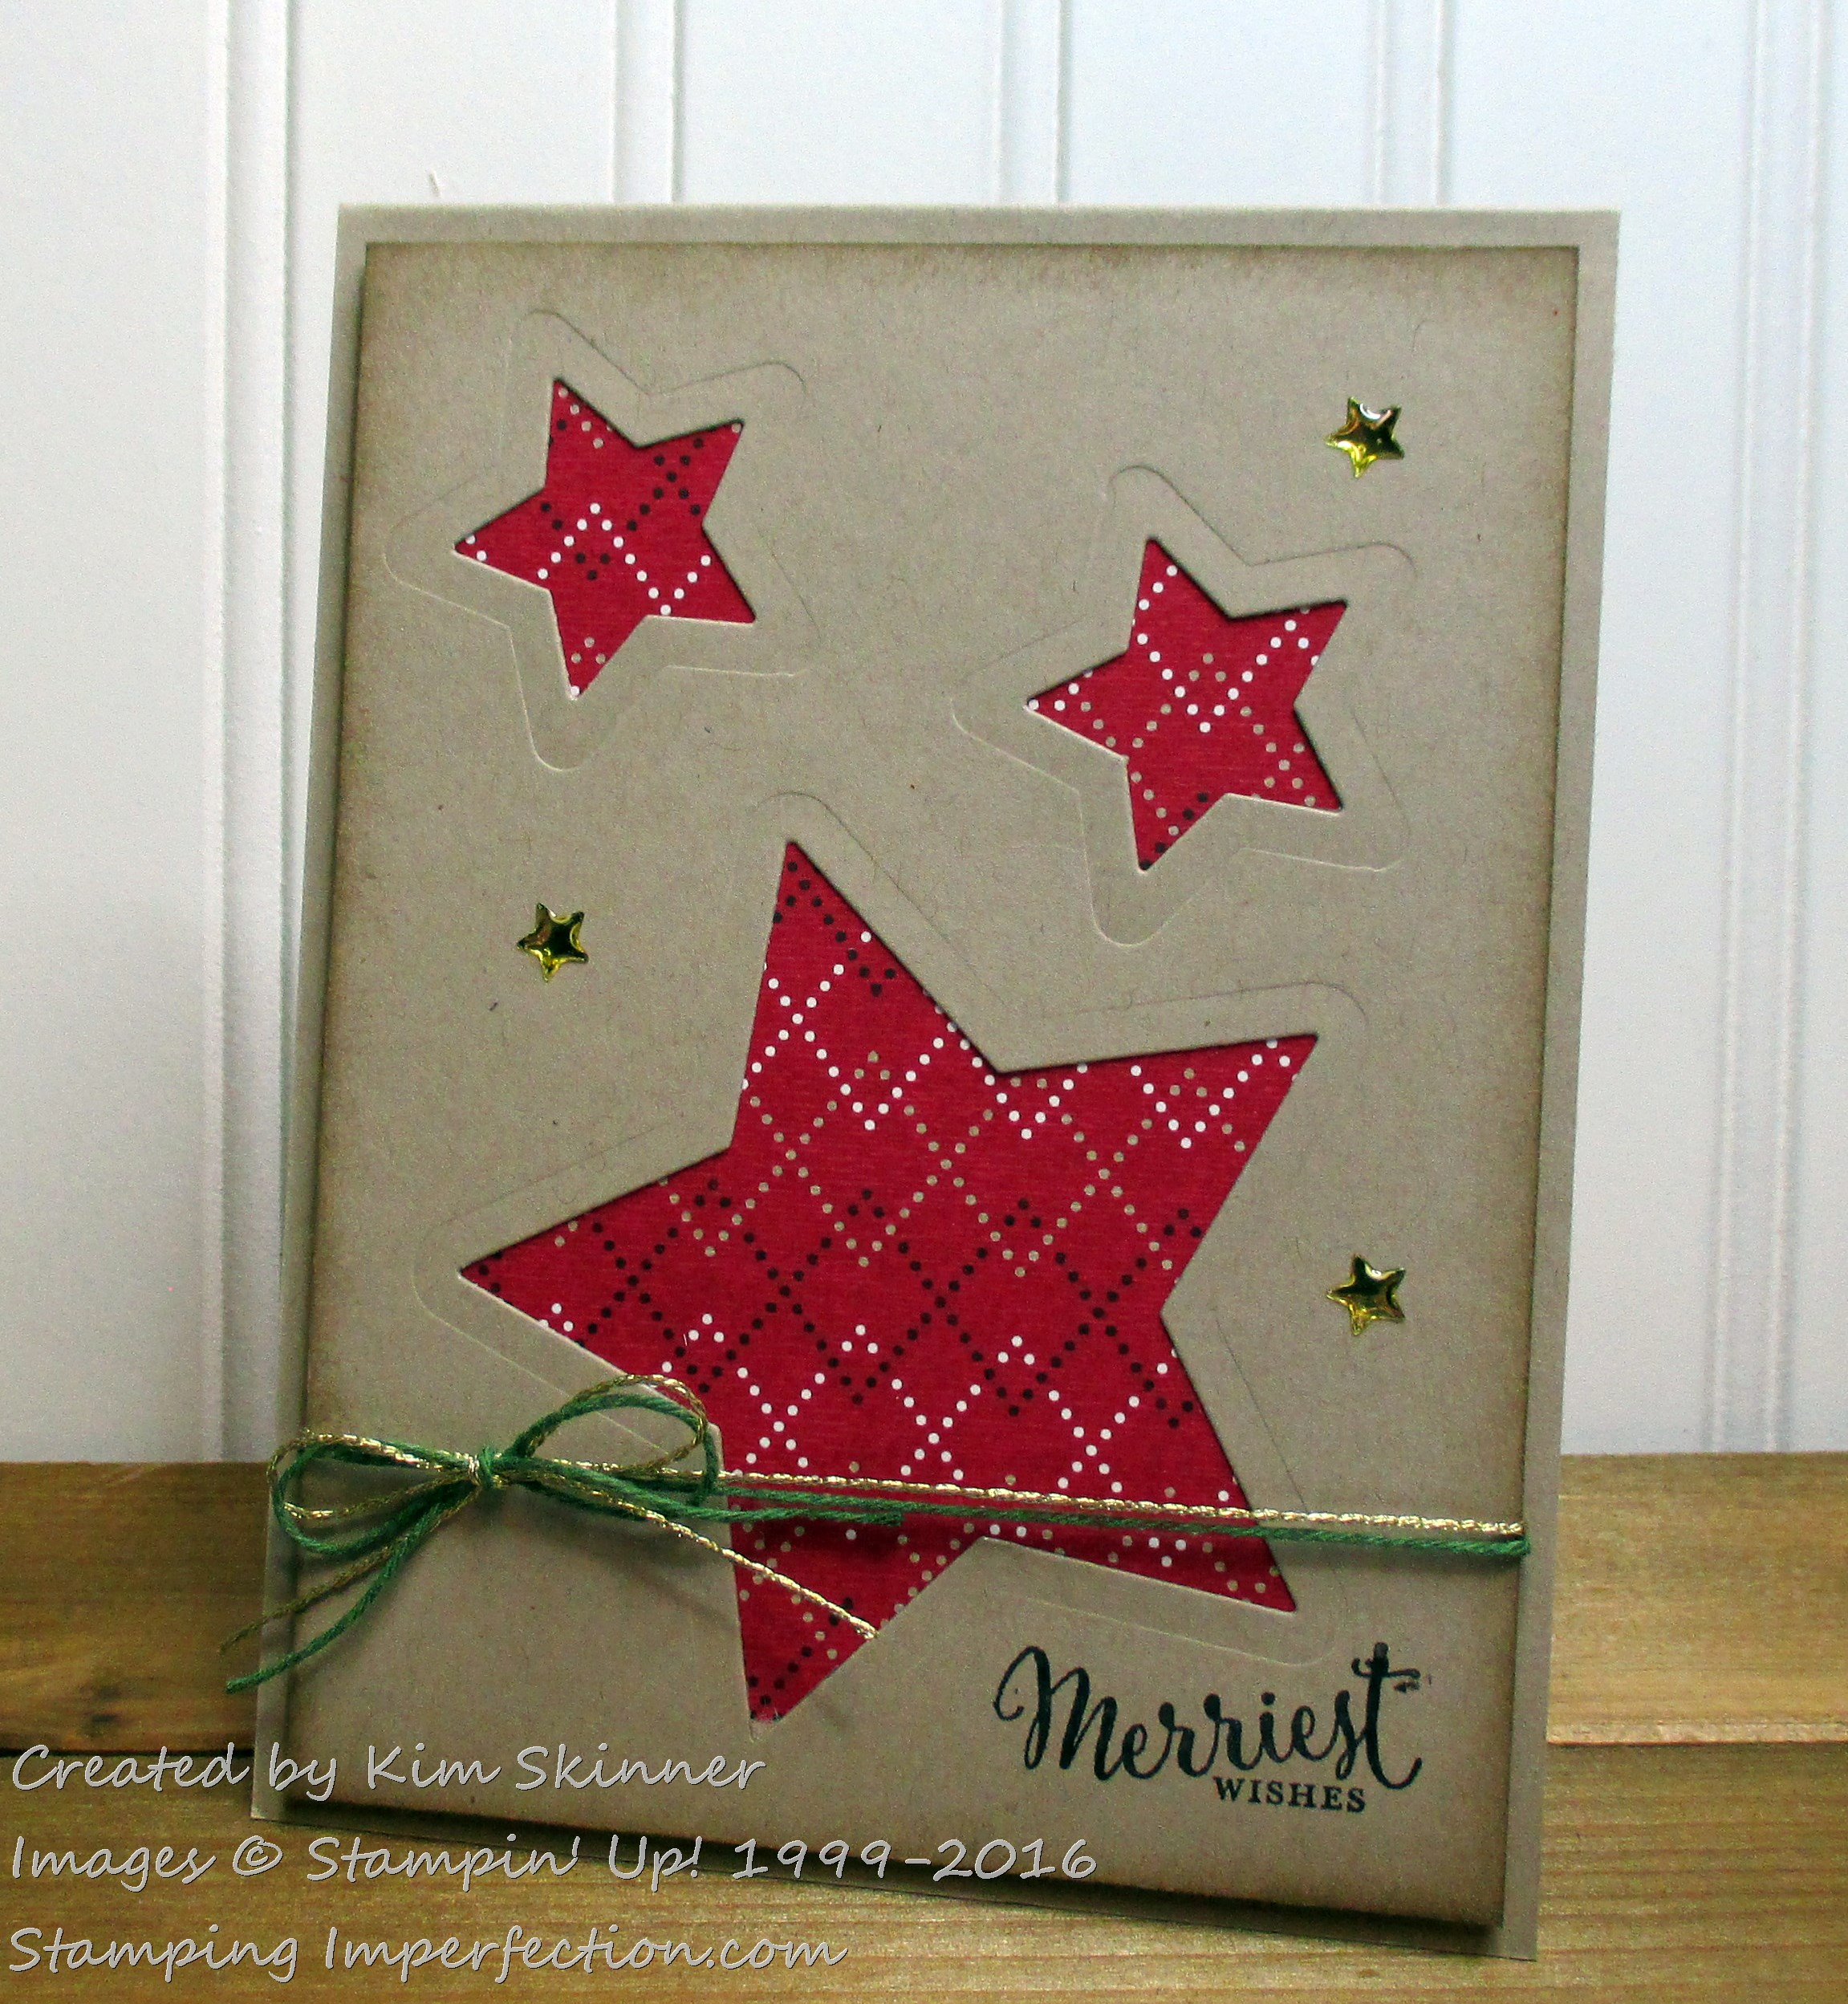 Stamping ImperfectionHoliday Paper Challenge